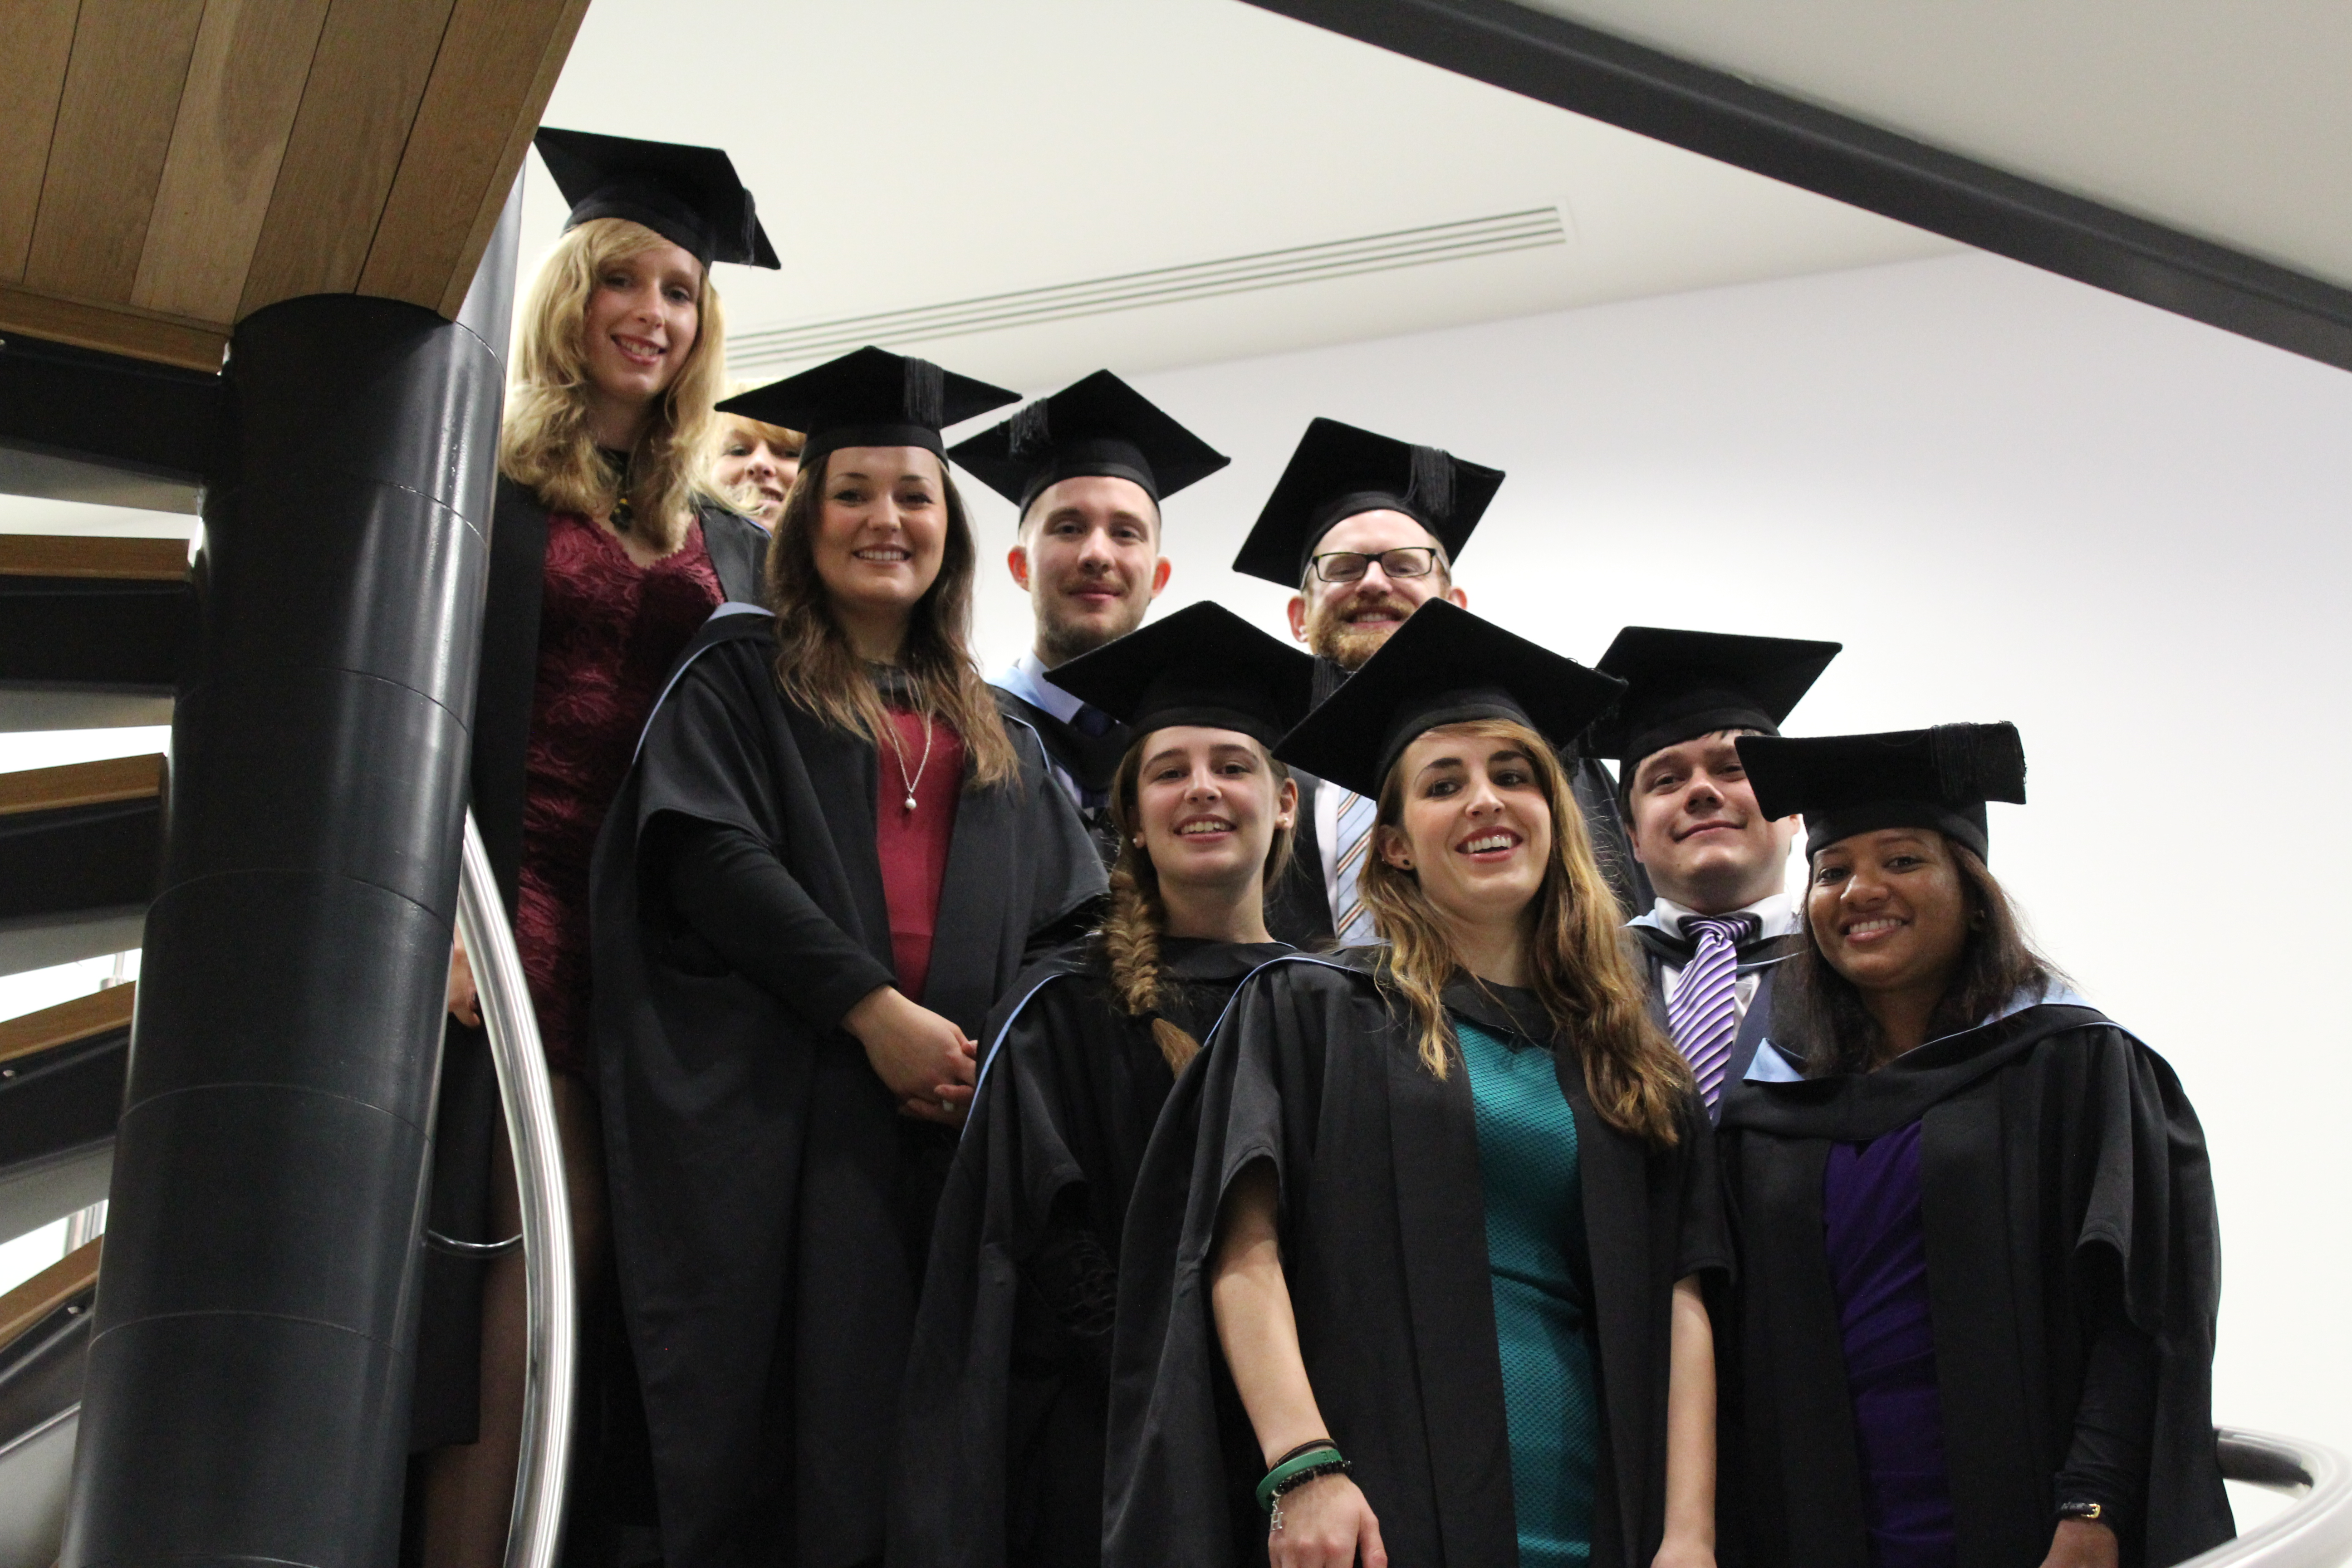 Graduation How To Get Your Hands On Robes And Mortarboards Students Union Blog